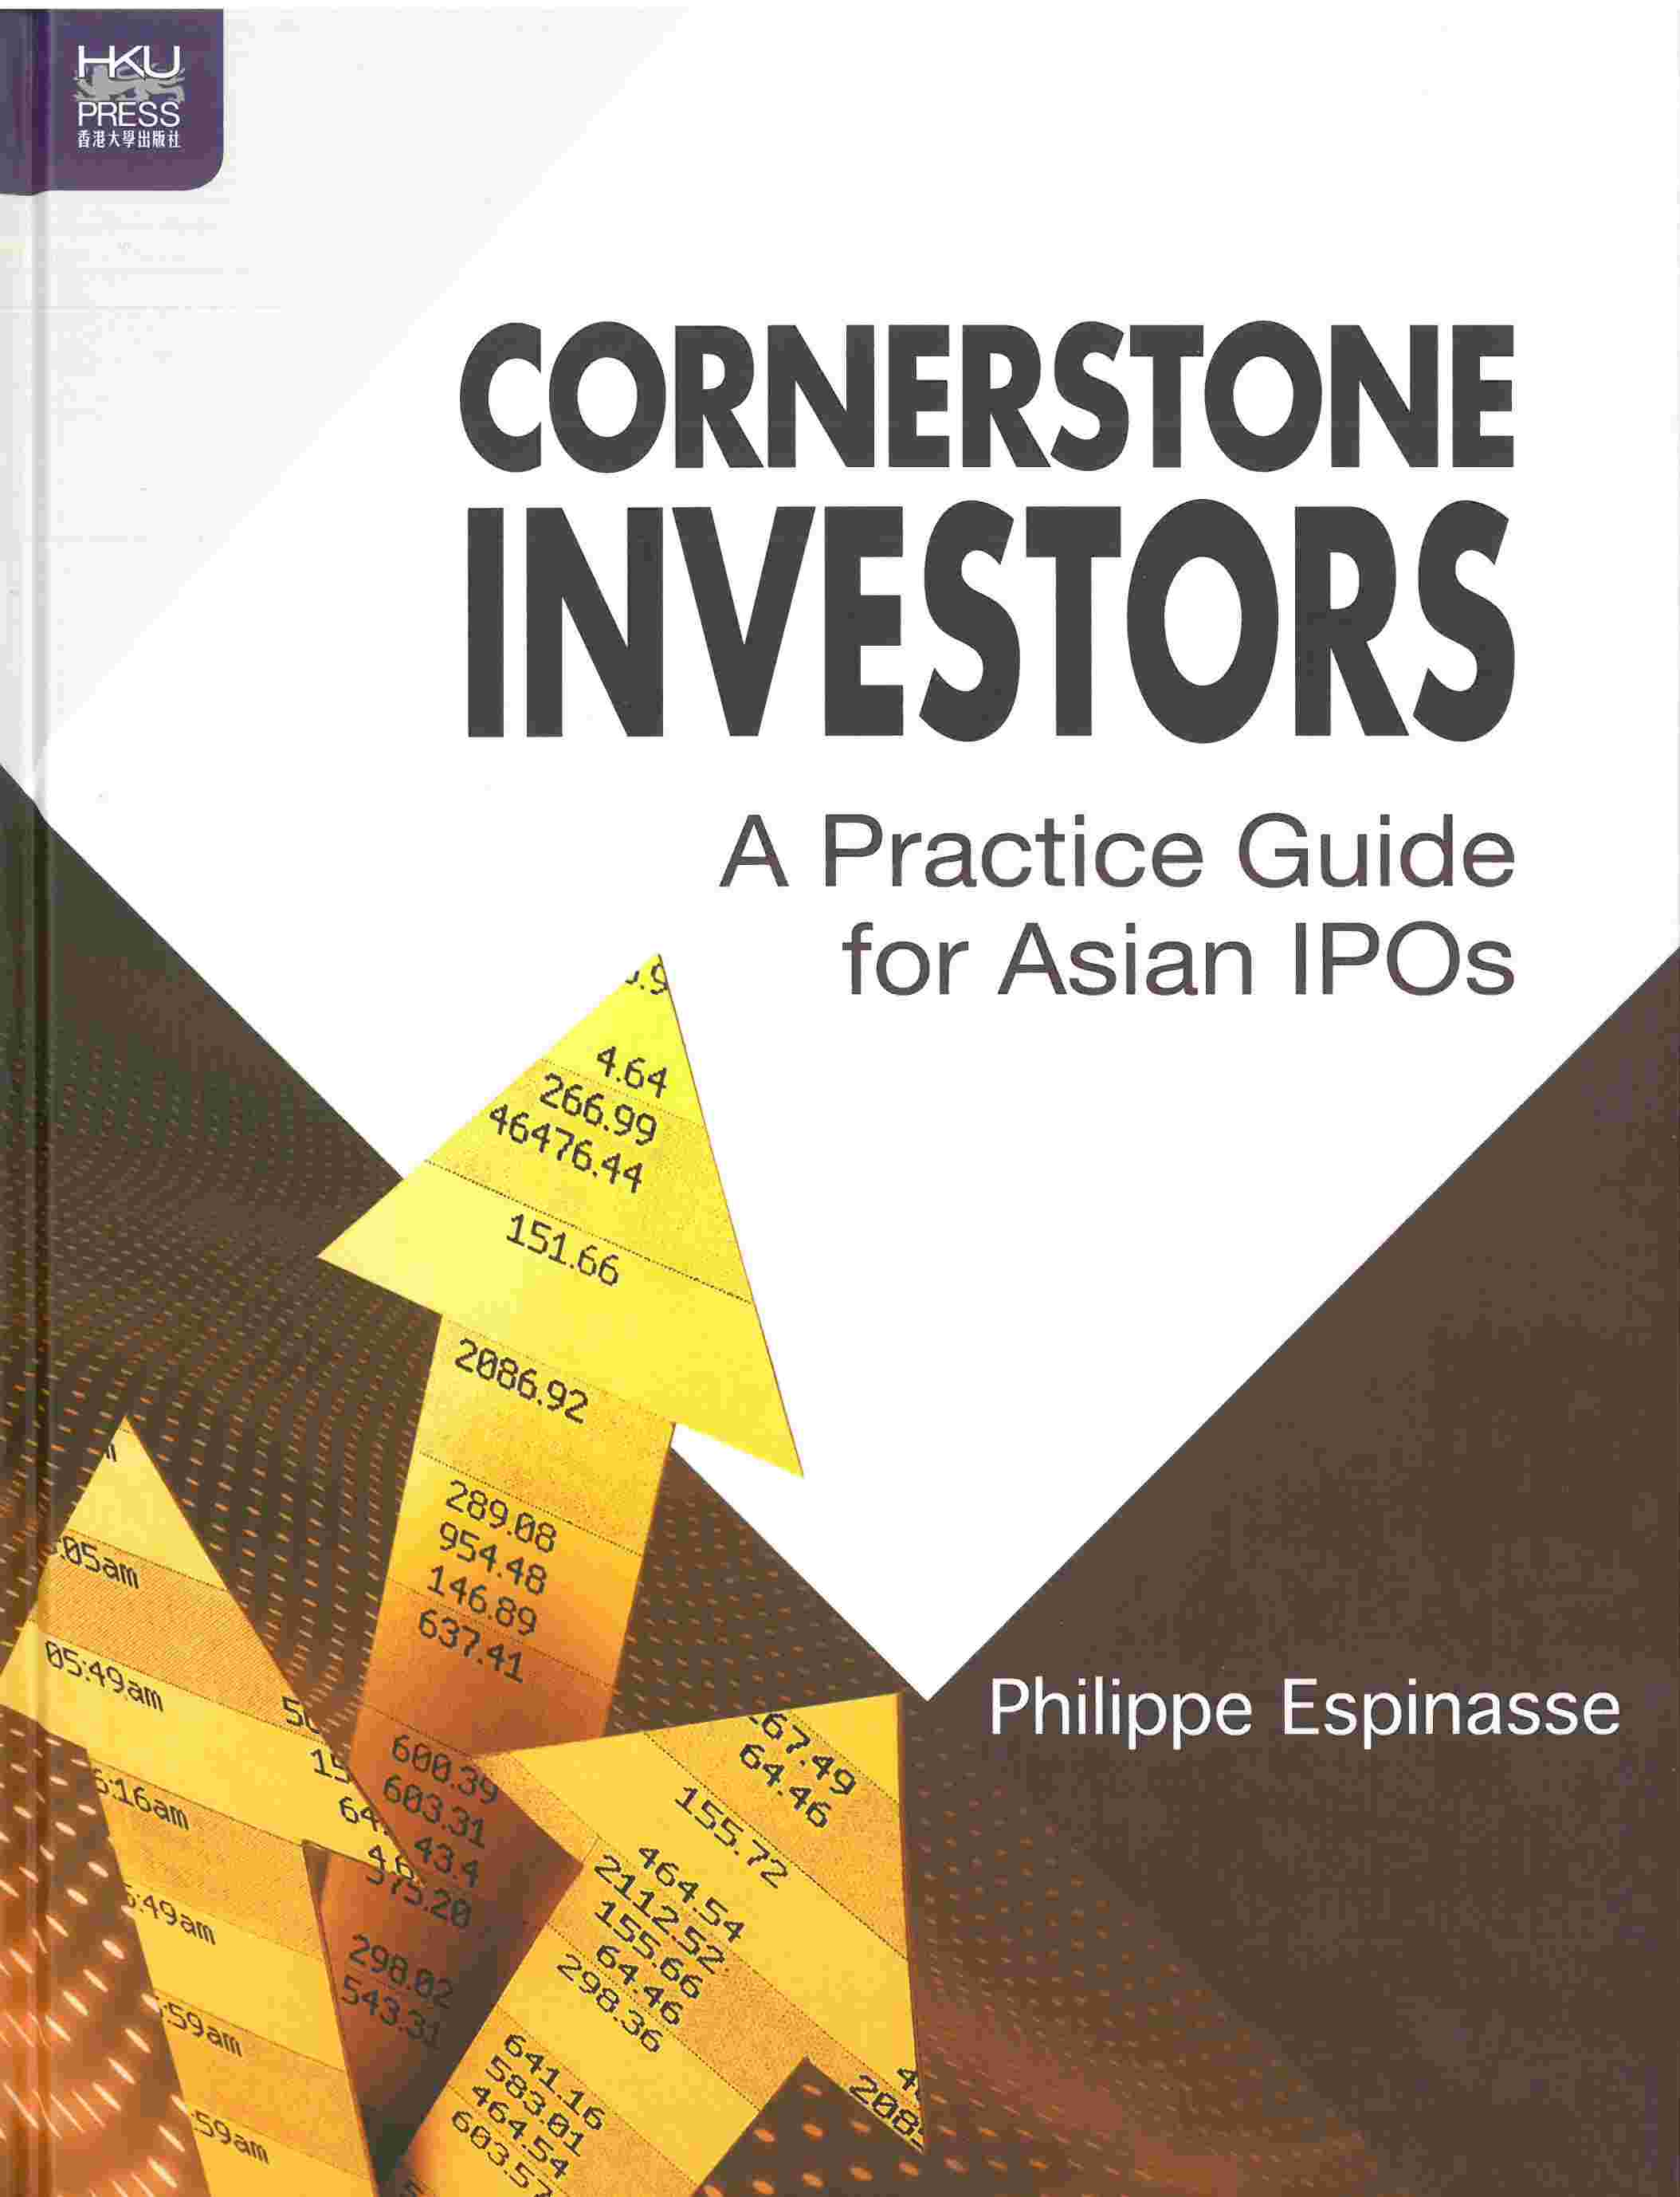 CORNERSTONE INVESTORS   A Practice Guide for Asian IPOs